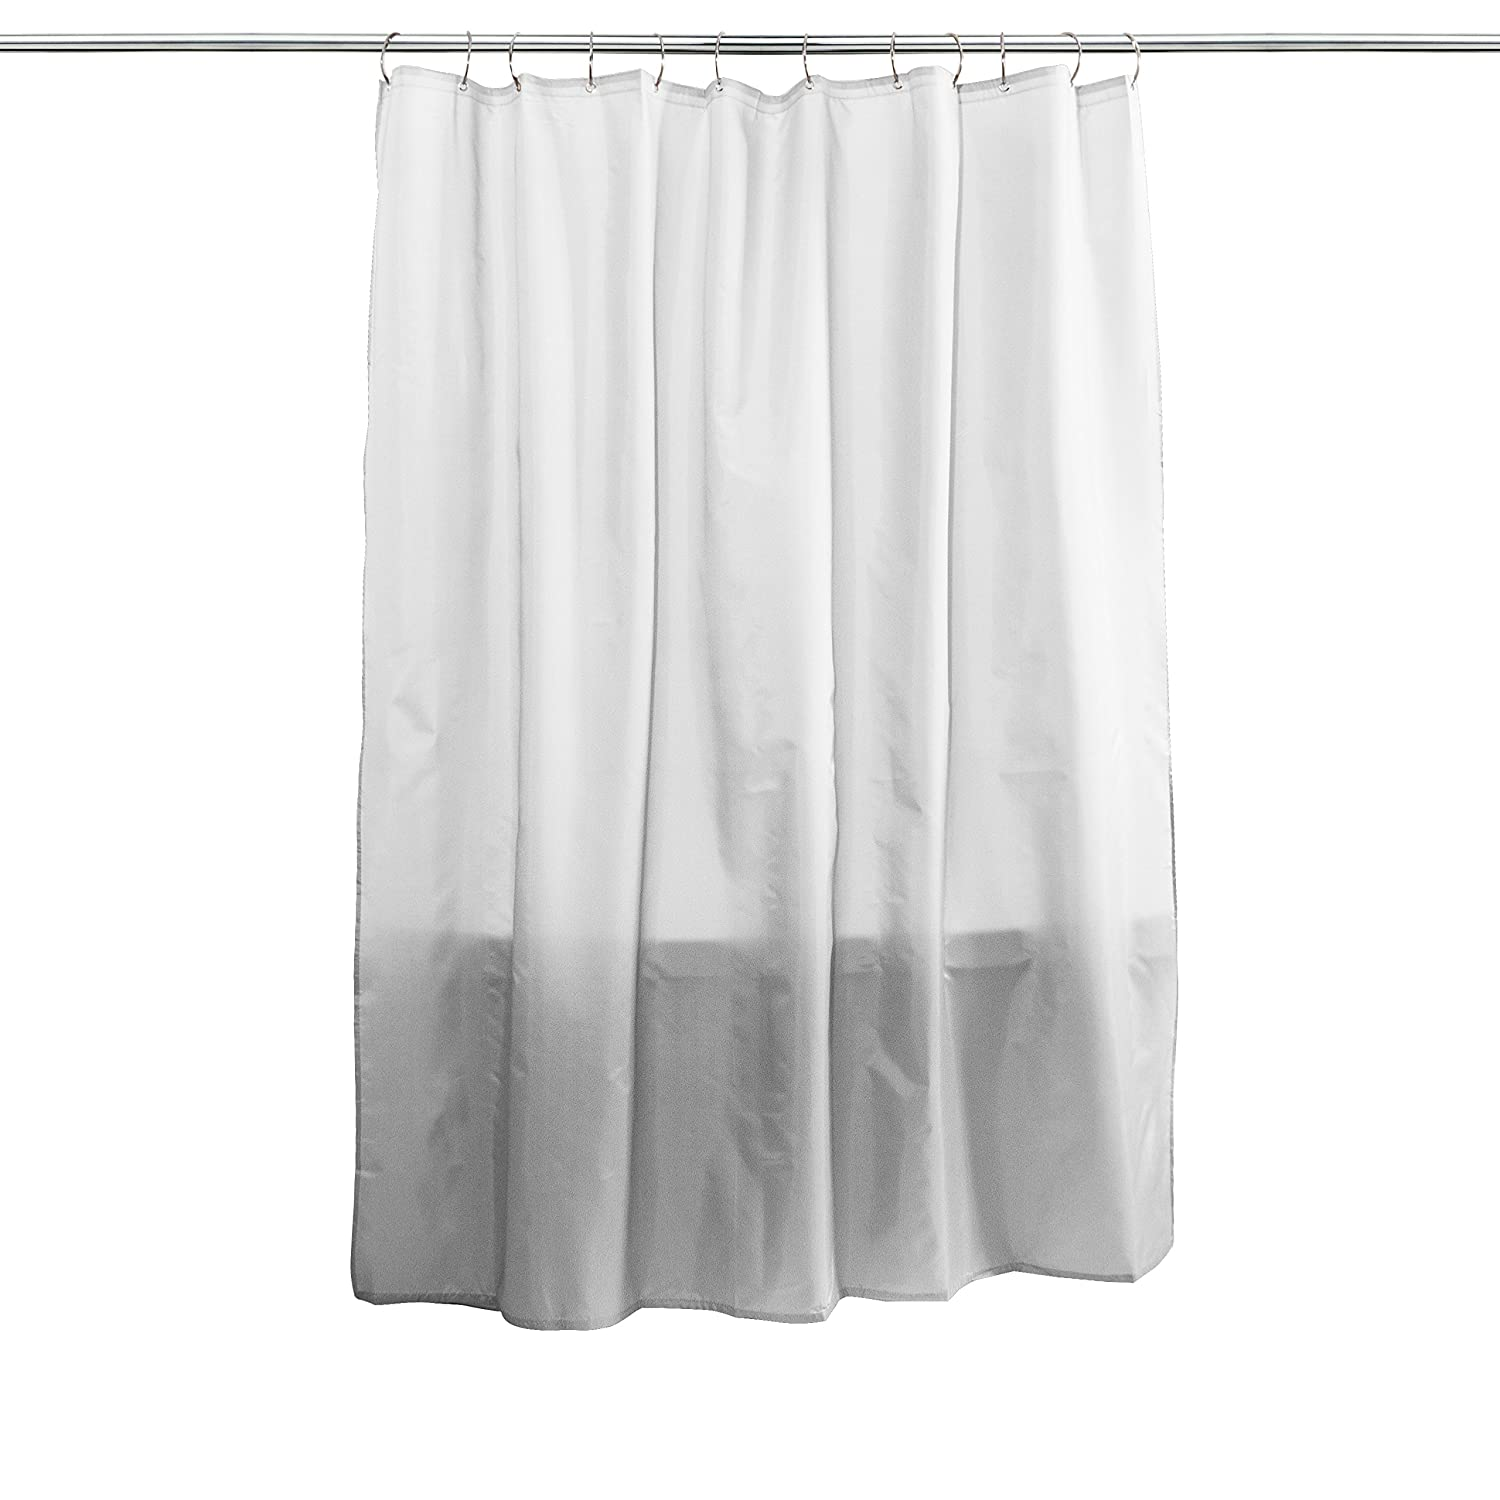 cheap choosing curved transparent curtains waffle weave fancy dragonfly white curtain in linen images shower bathtub of modern pink ideas bathroom stall the gallery rustic online